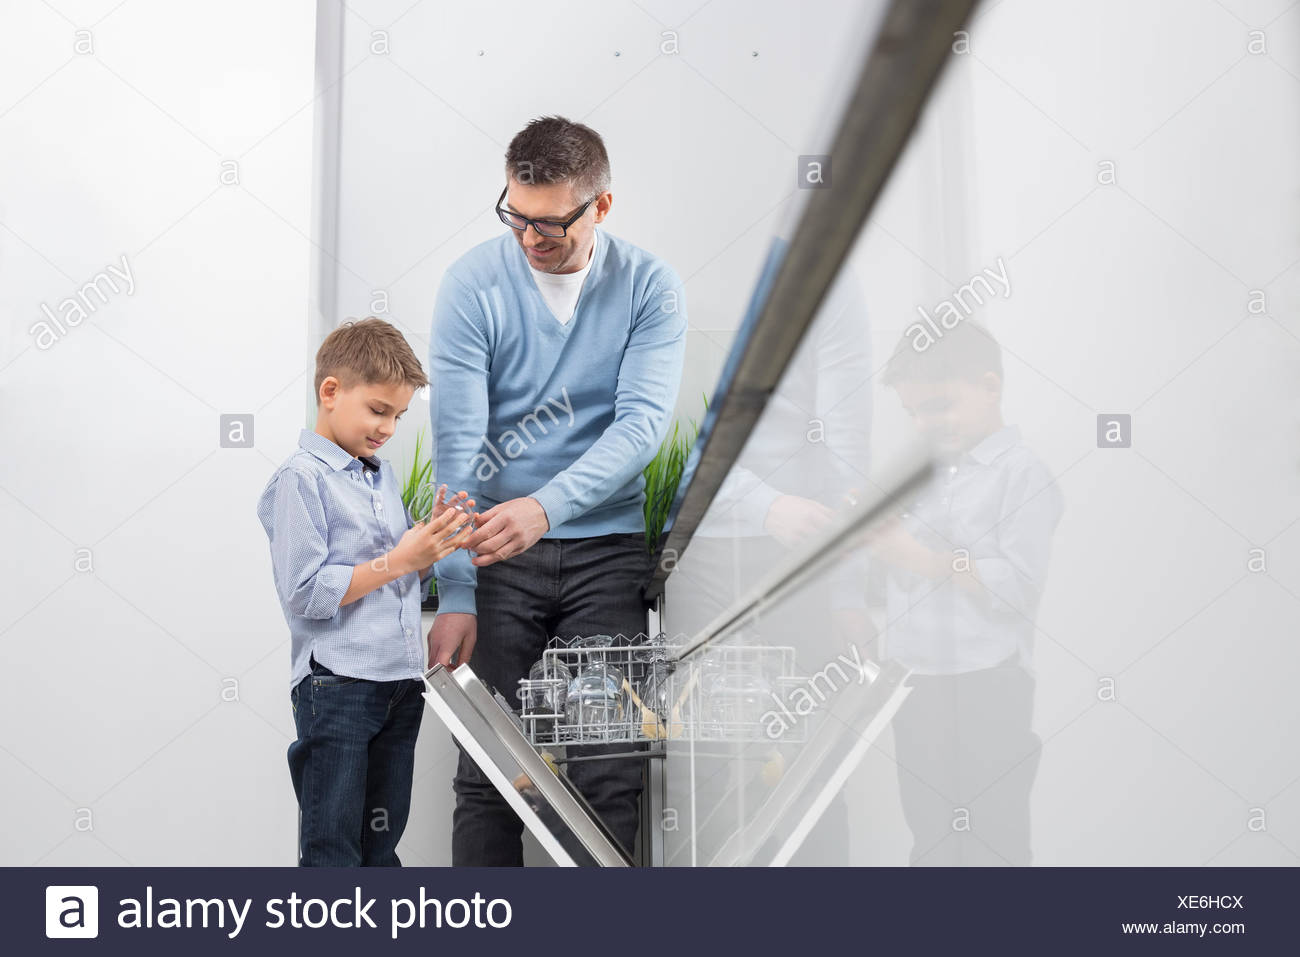 Father and son placing glass in dishwasher at kitchen - Stock Image